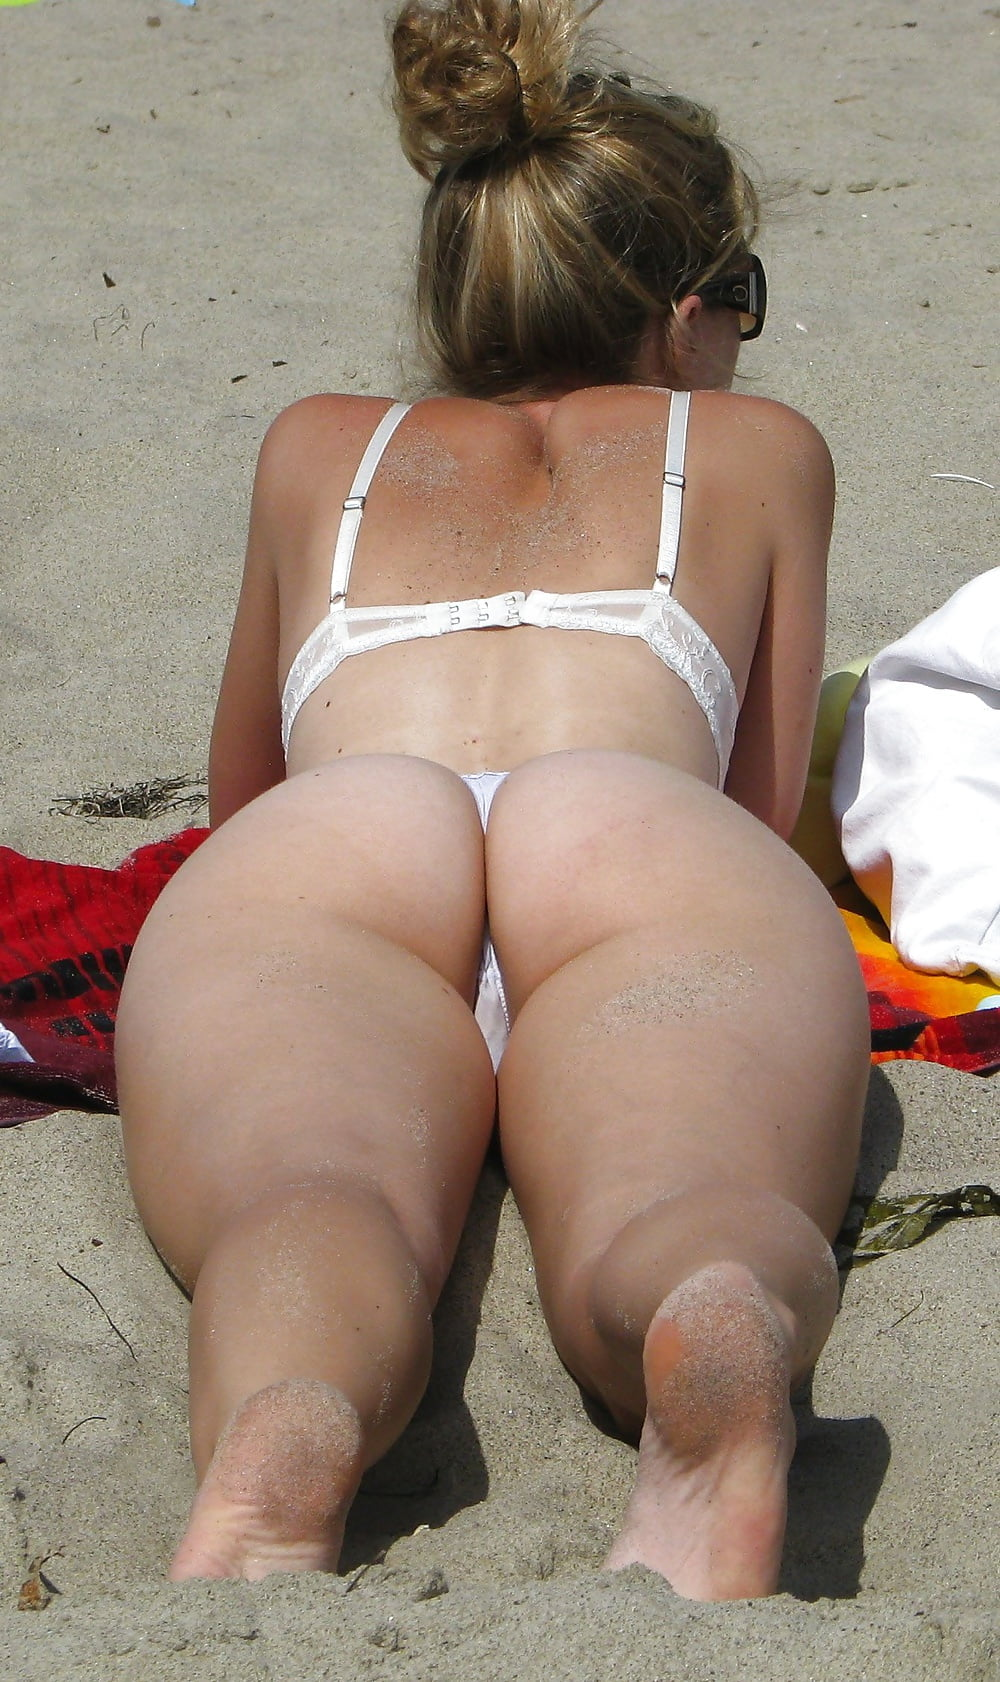 voyeur-street-ass-pics-australian-nude-beaches-photos-photos